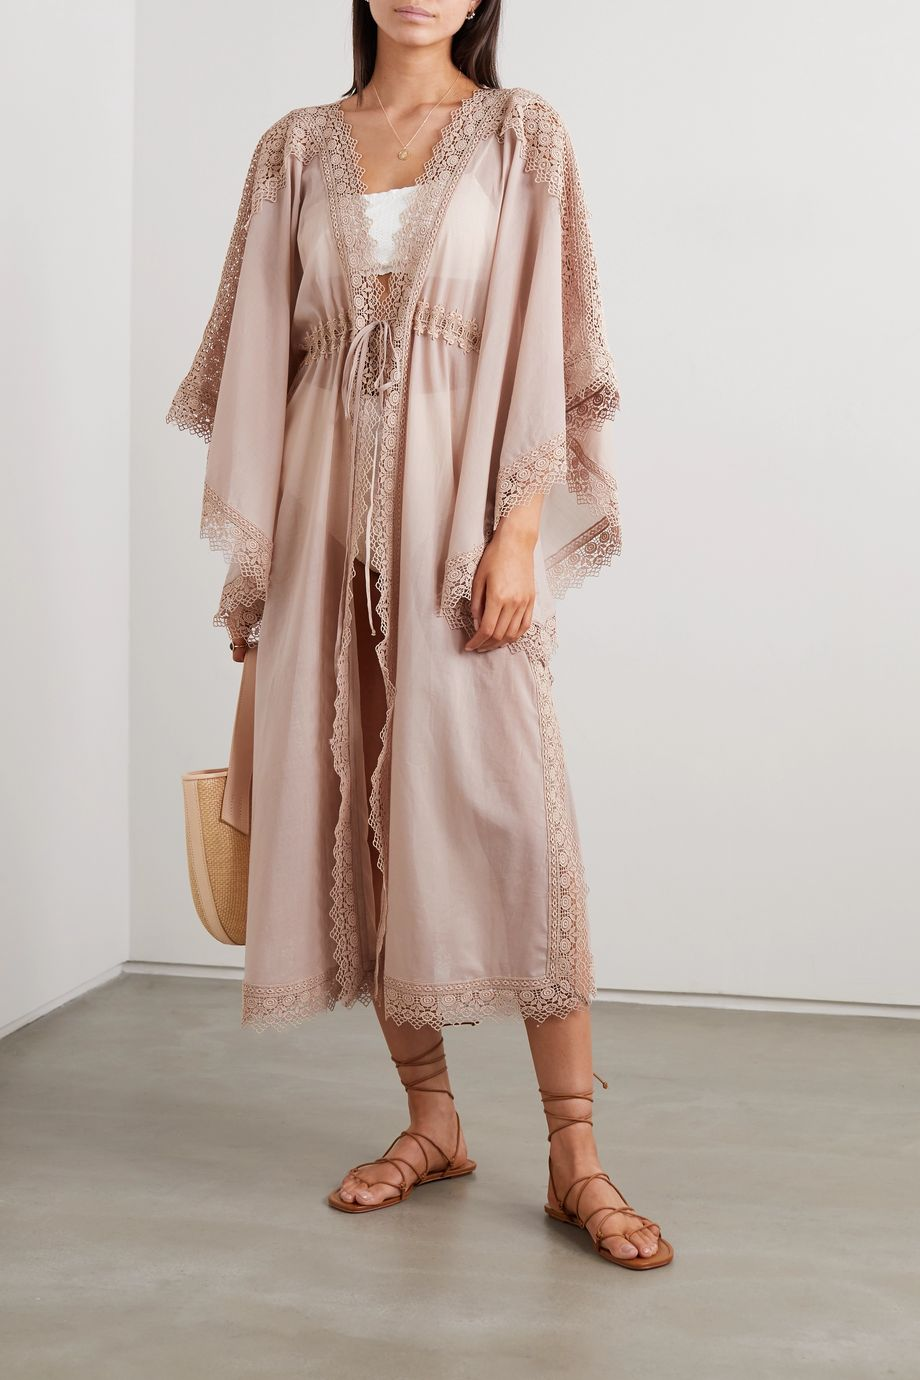 Charo Ruiz Angela crocheted lace-paneled cotton-blend voile robe